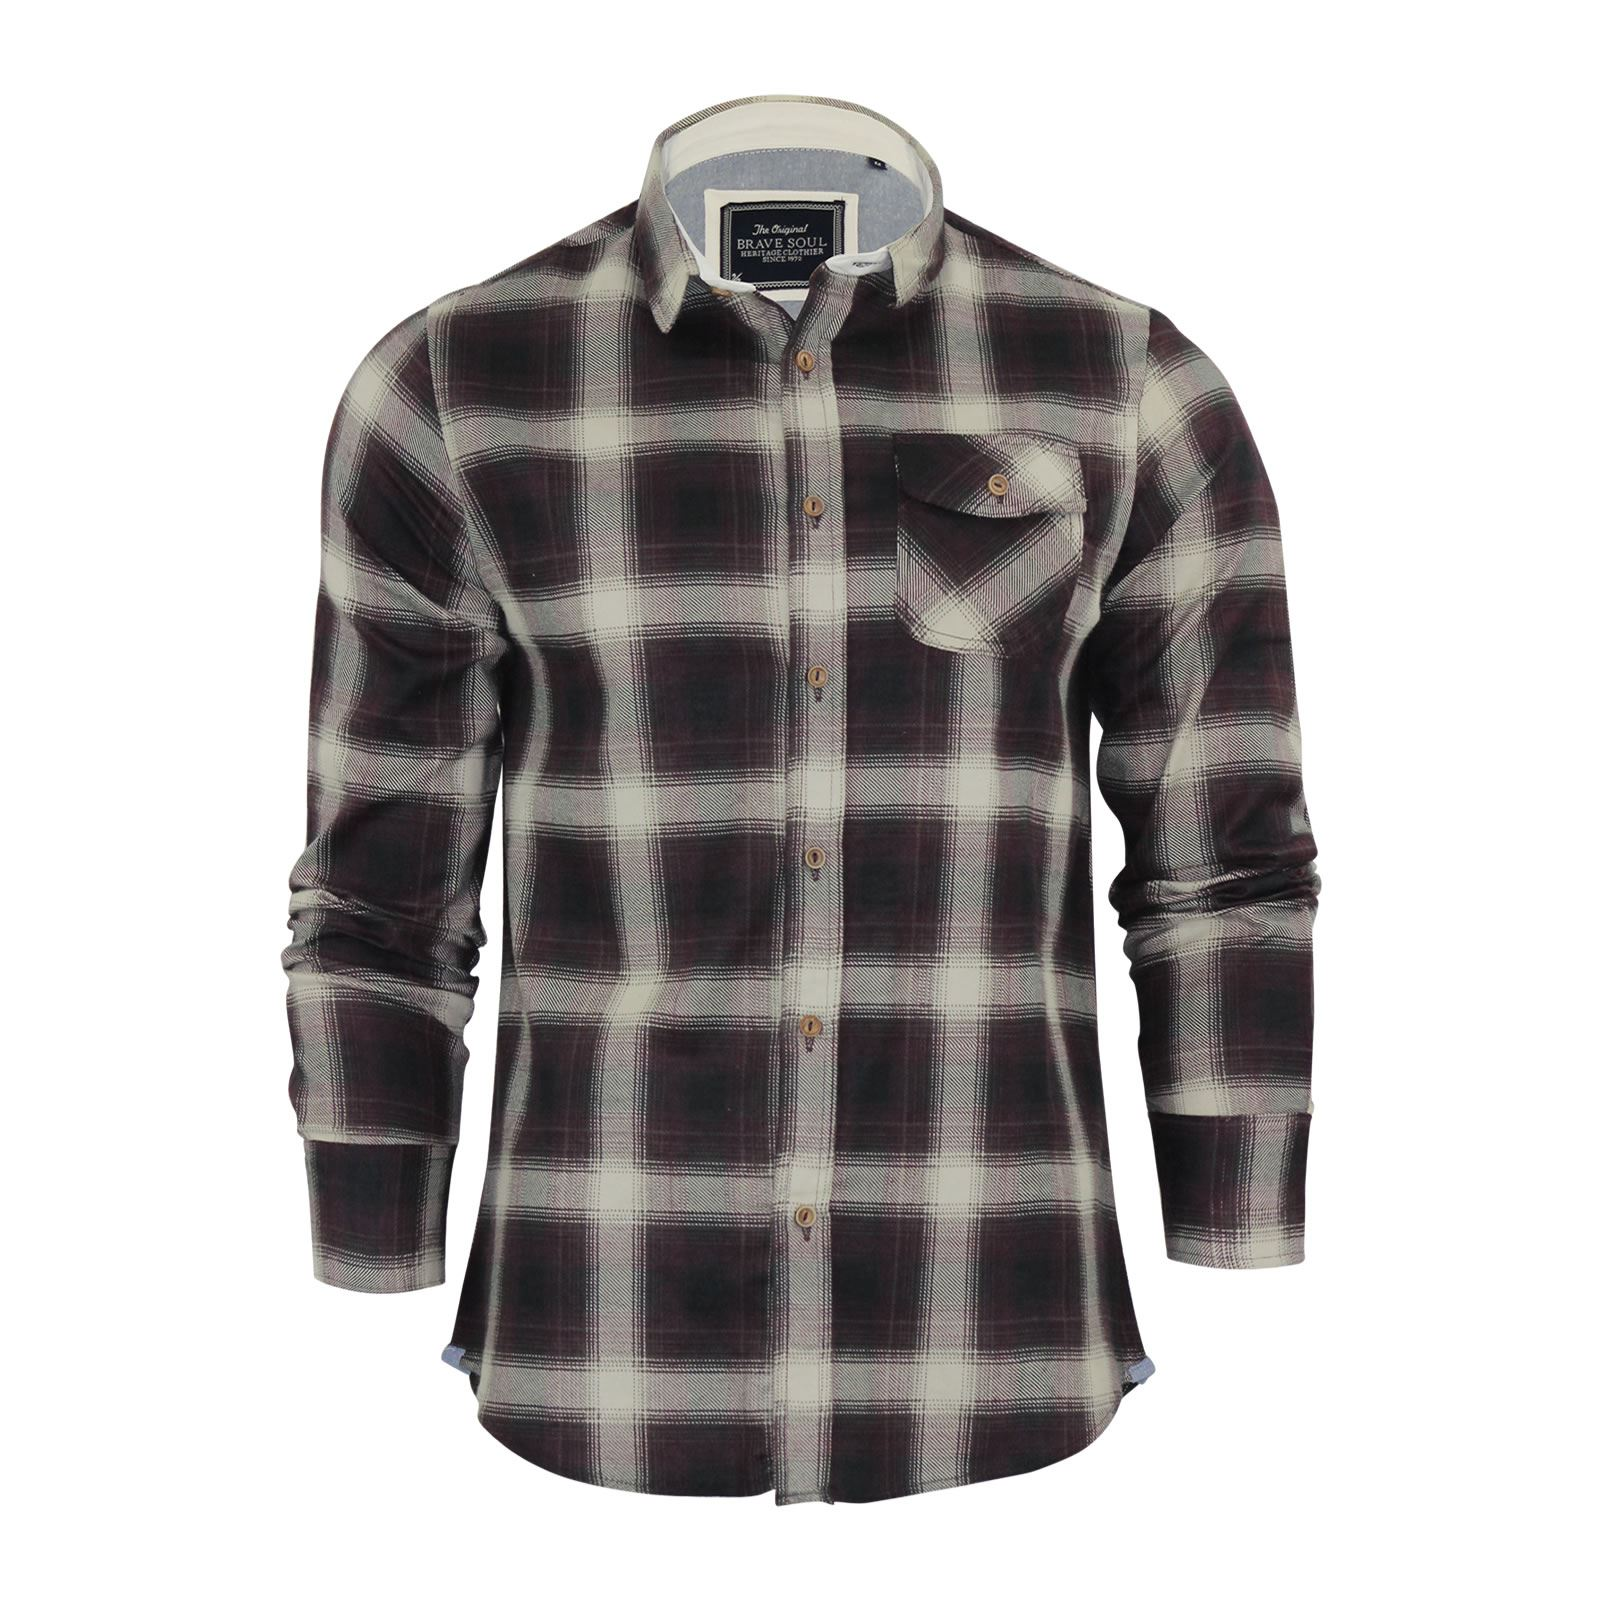 Brave-Soul-Mens-Check-Shirt-Flannel-Brushed-Cotton-Long-Sleeve-Casual-Top thumbnail 41